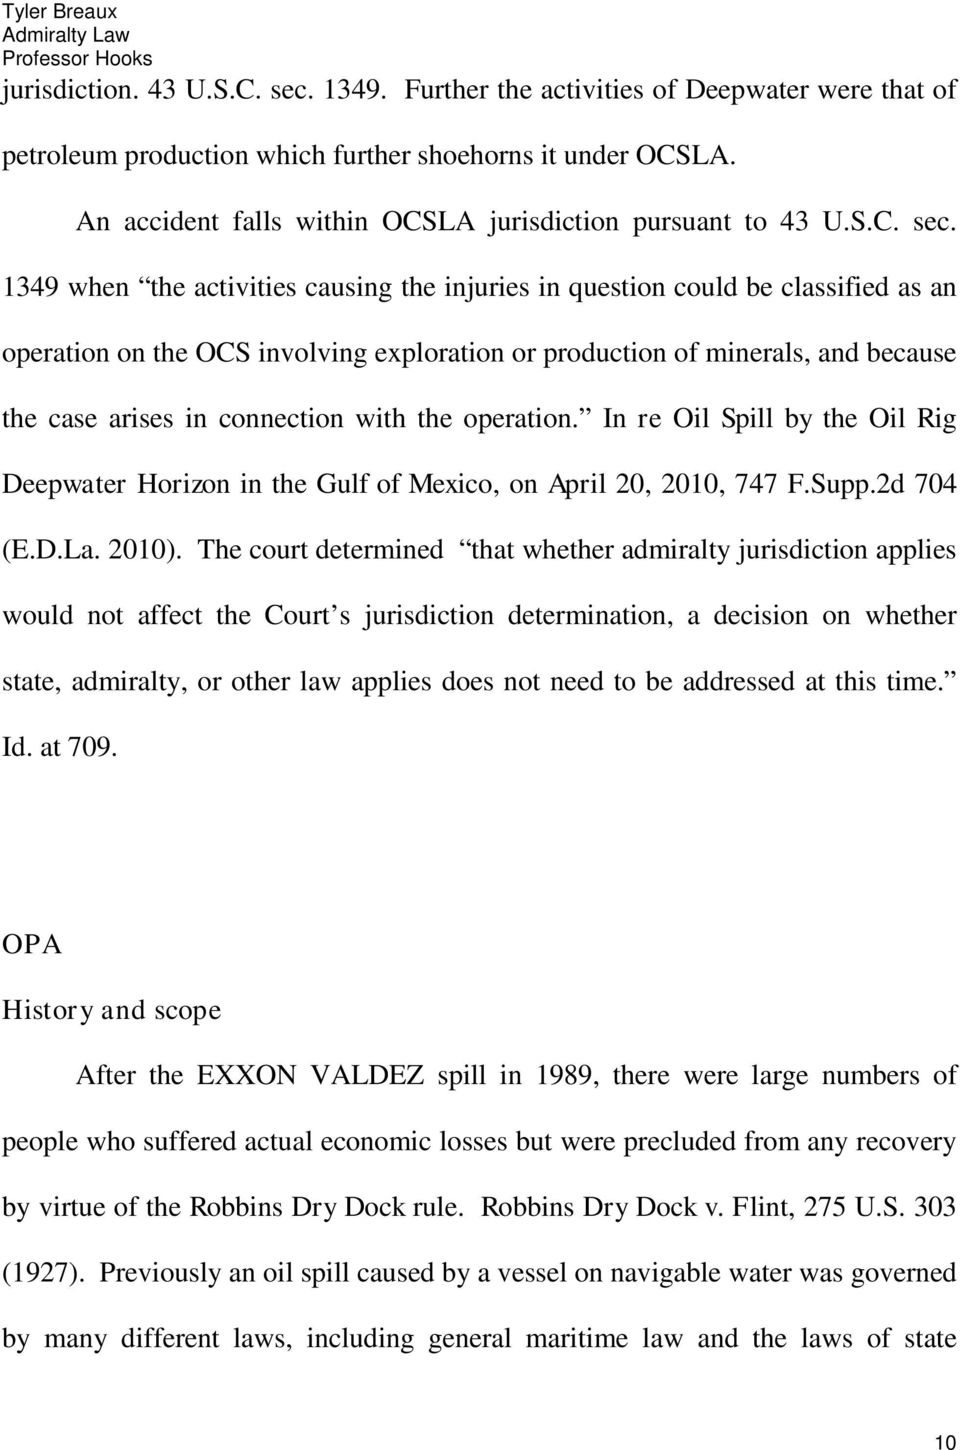 1349 when the activities causing the injuries in question could be classified as an operation on the OCS involving exploration or production of minerals, and because the case arises in connection